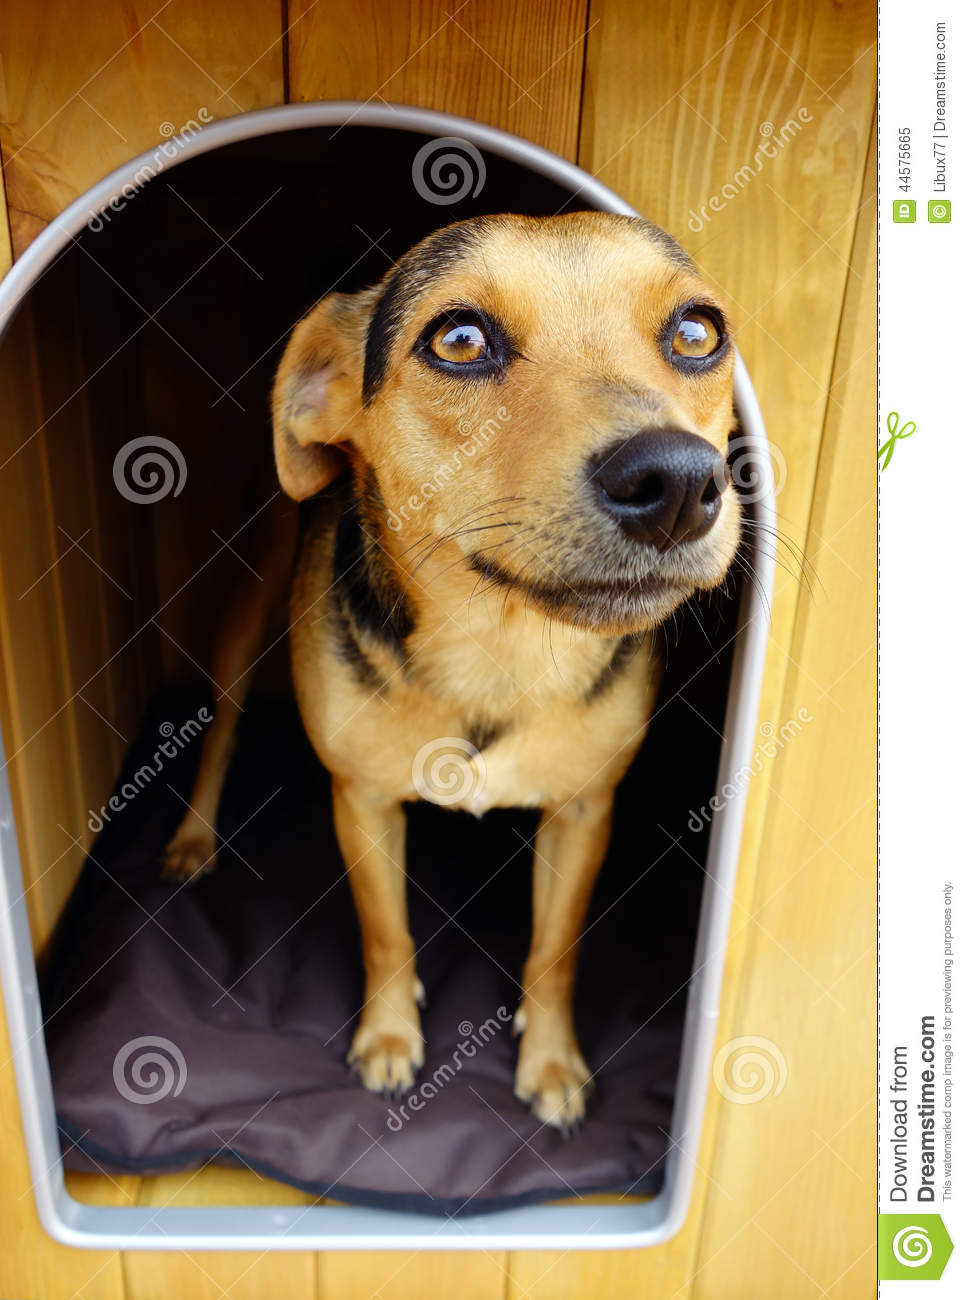 Download Brown Small Dog In Doghouse Shelter Stock Image - Image of cushion, game: 44575665